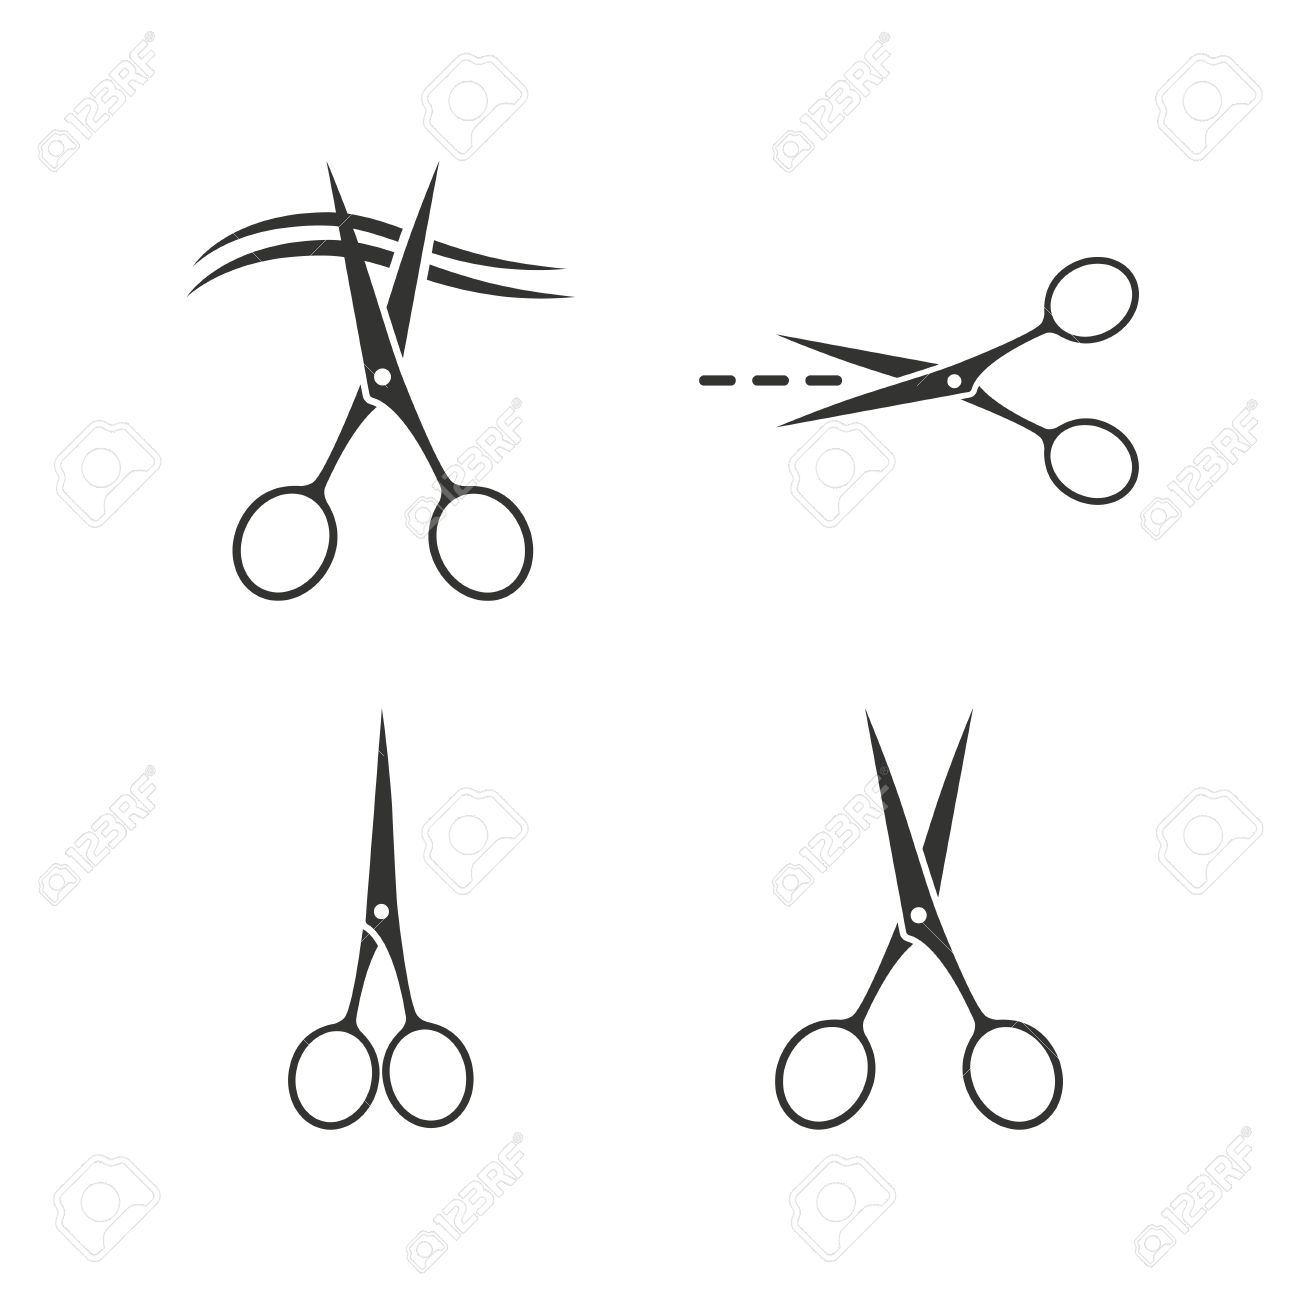 Scissors icons hairdresser or barbershop symbol scissors cut scissors icons hairdresser or barbershop symbol scissors cut hair cut dash dotted line biocorpaavc